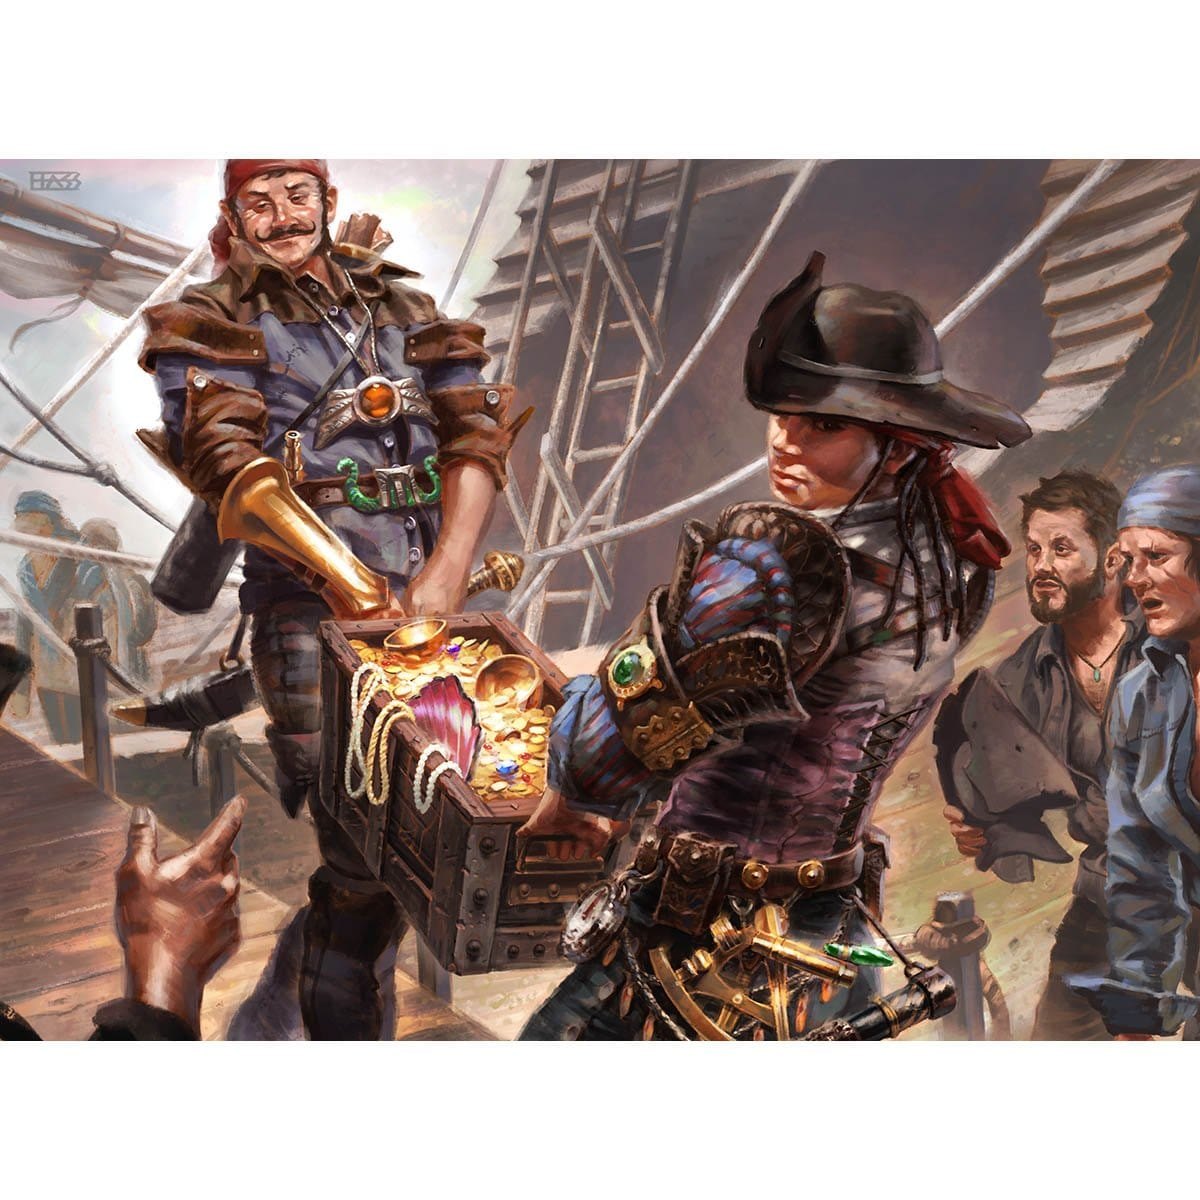 Prosperous Pirates Print - Print - Original Magic Art - Accessories for Magic the Gathering and other card games